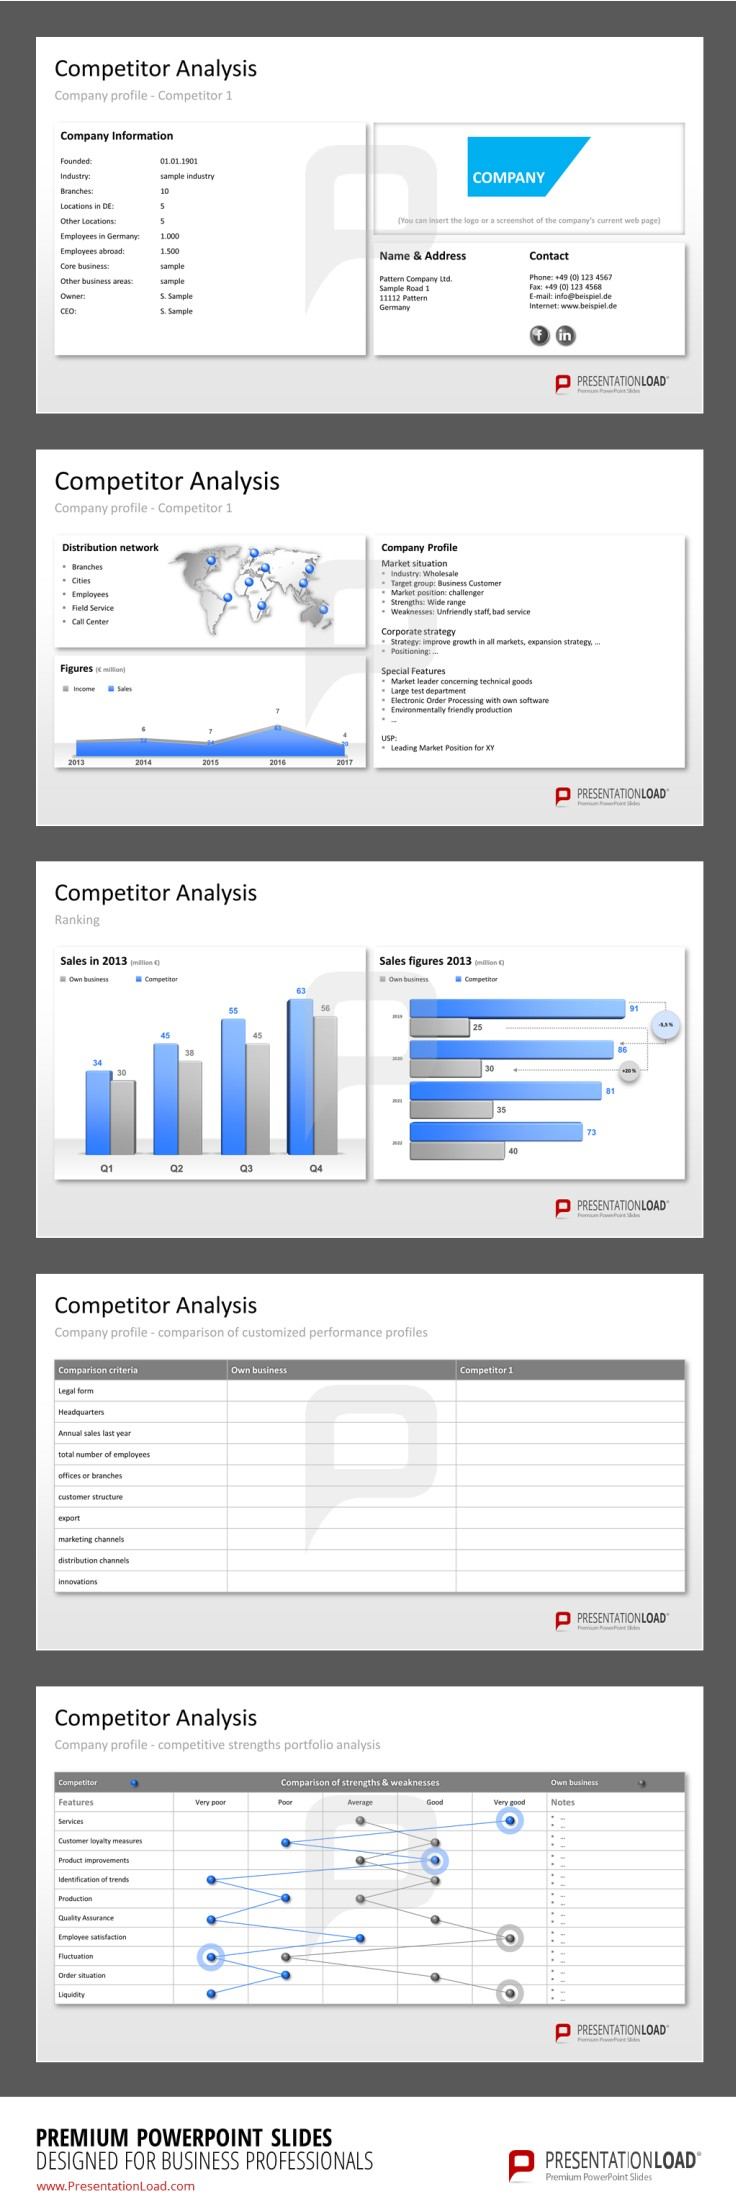 Competitor Analysis Powerpoint Templates Create Detailed Company